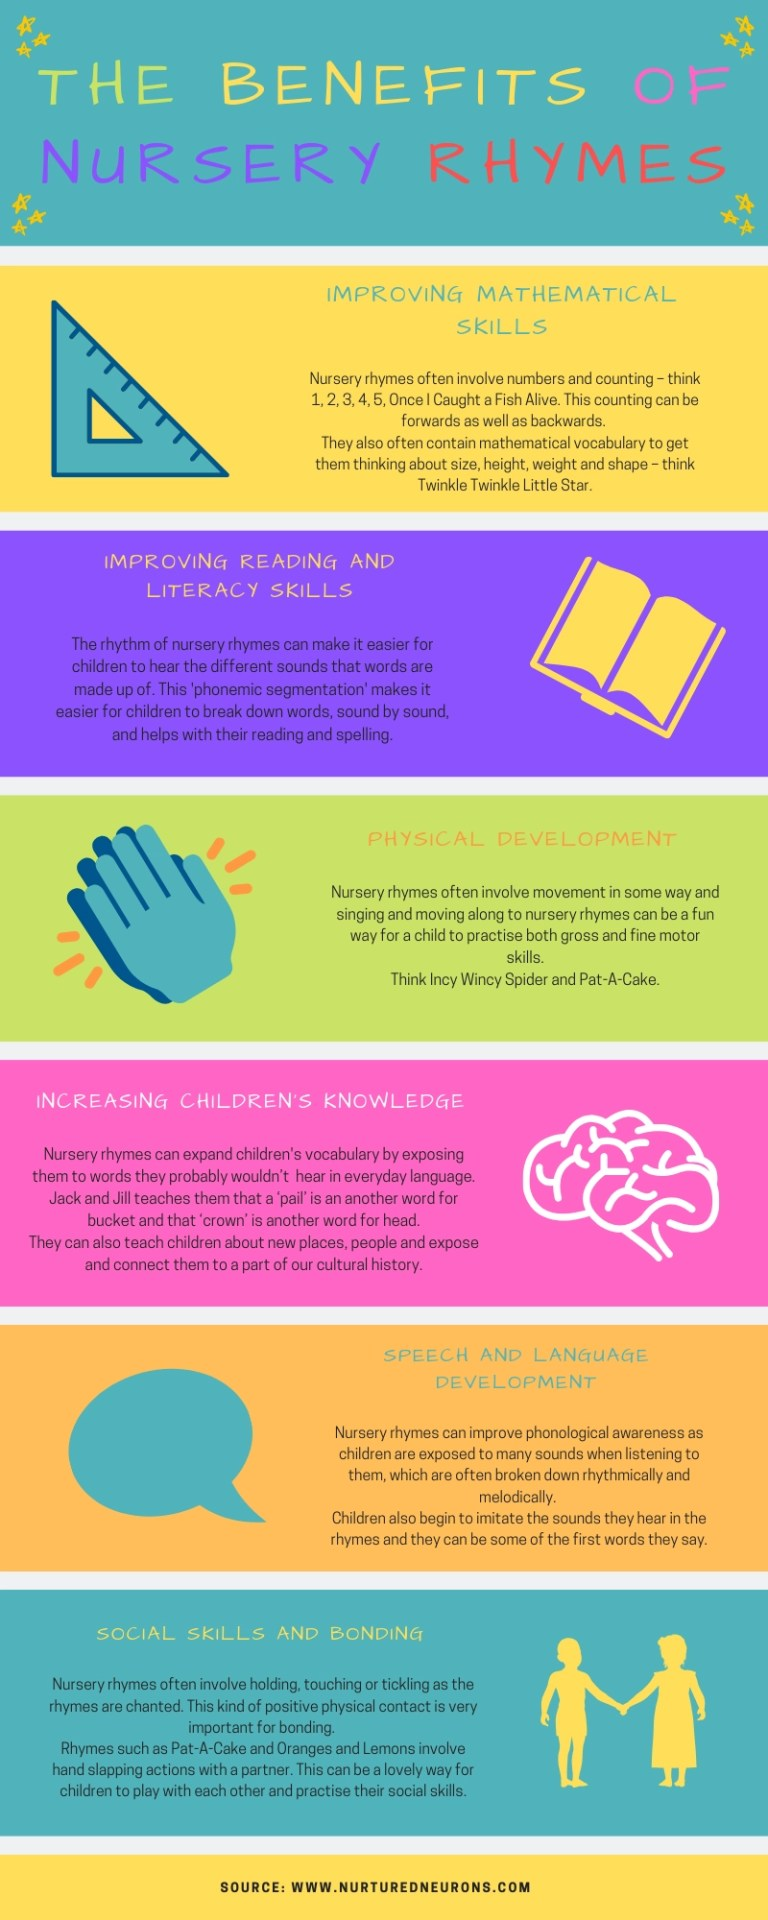 The Benefits of Nursery Rhymes Infographic